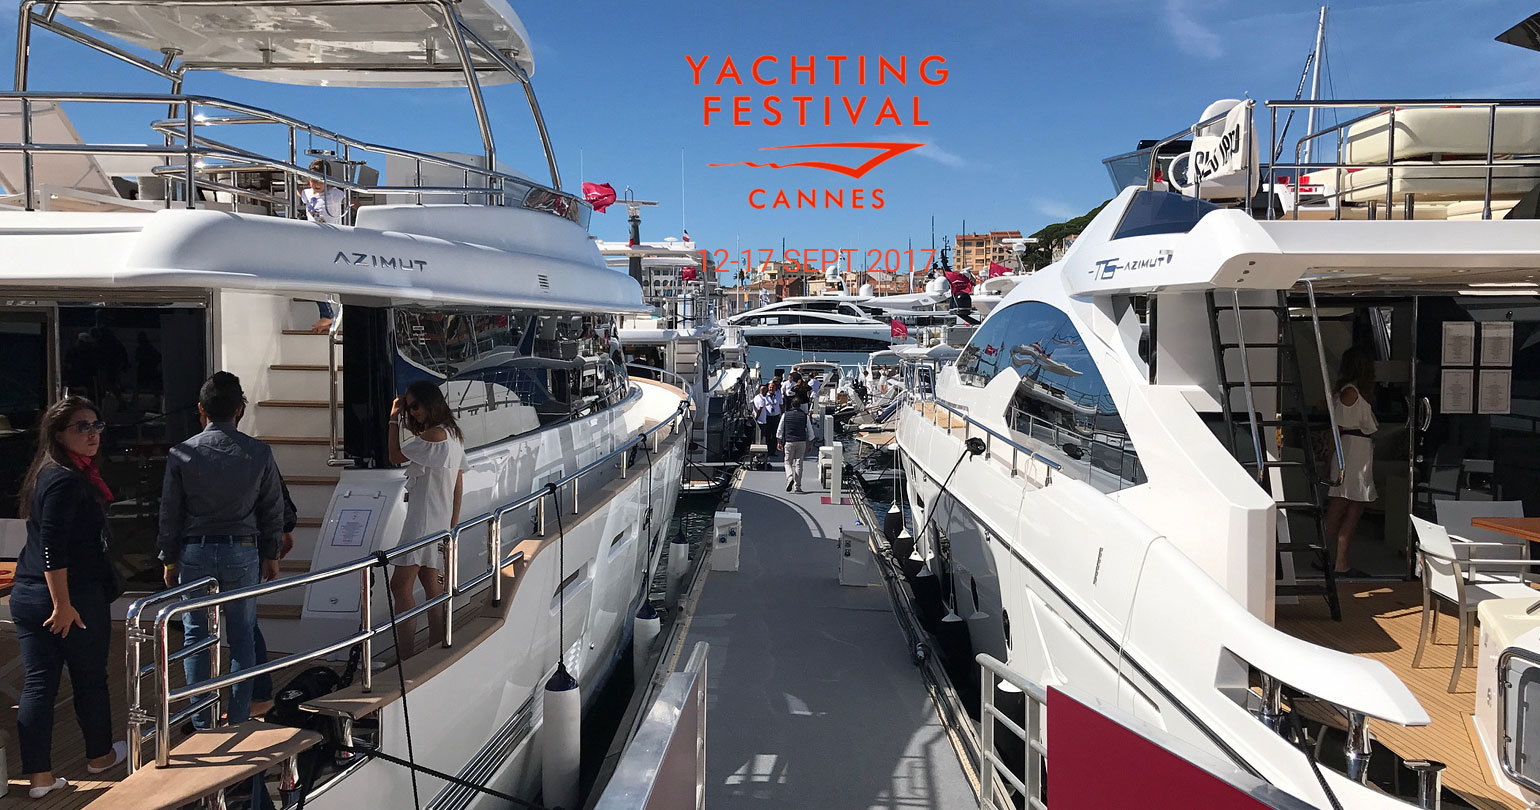 Cannes Yachting Festival 2017 - 12-17 СЕНТЯБРЯ